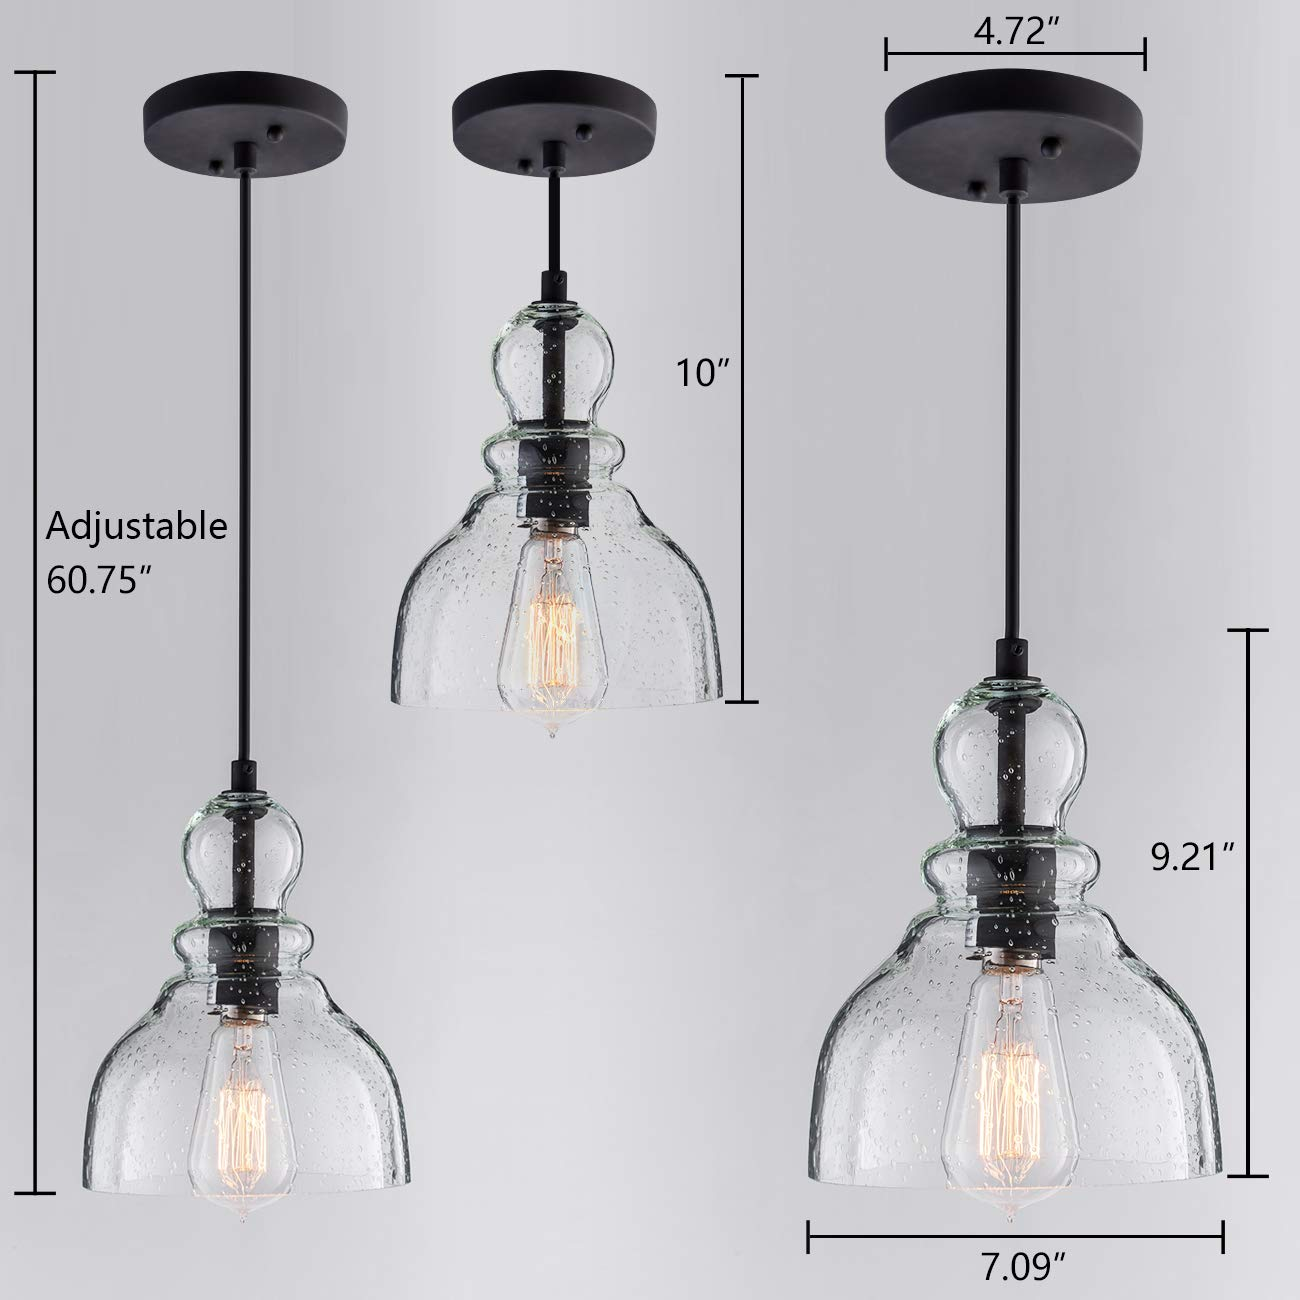 Lanros Industrial Mini Pendant Lighting with Handblown Clear Seeded Glass Shade, Adjustable Edison Farmhouse Kitchen Lamp for Kitchen Island, Restaurants, Hotels and Shops, 1-Pack by LANROS (Image #6)